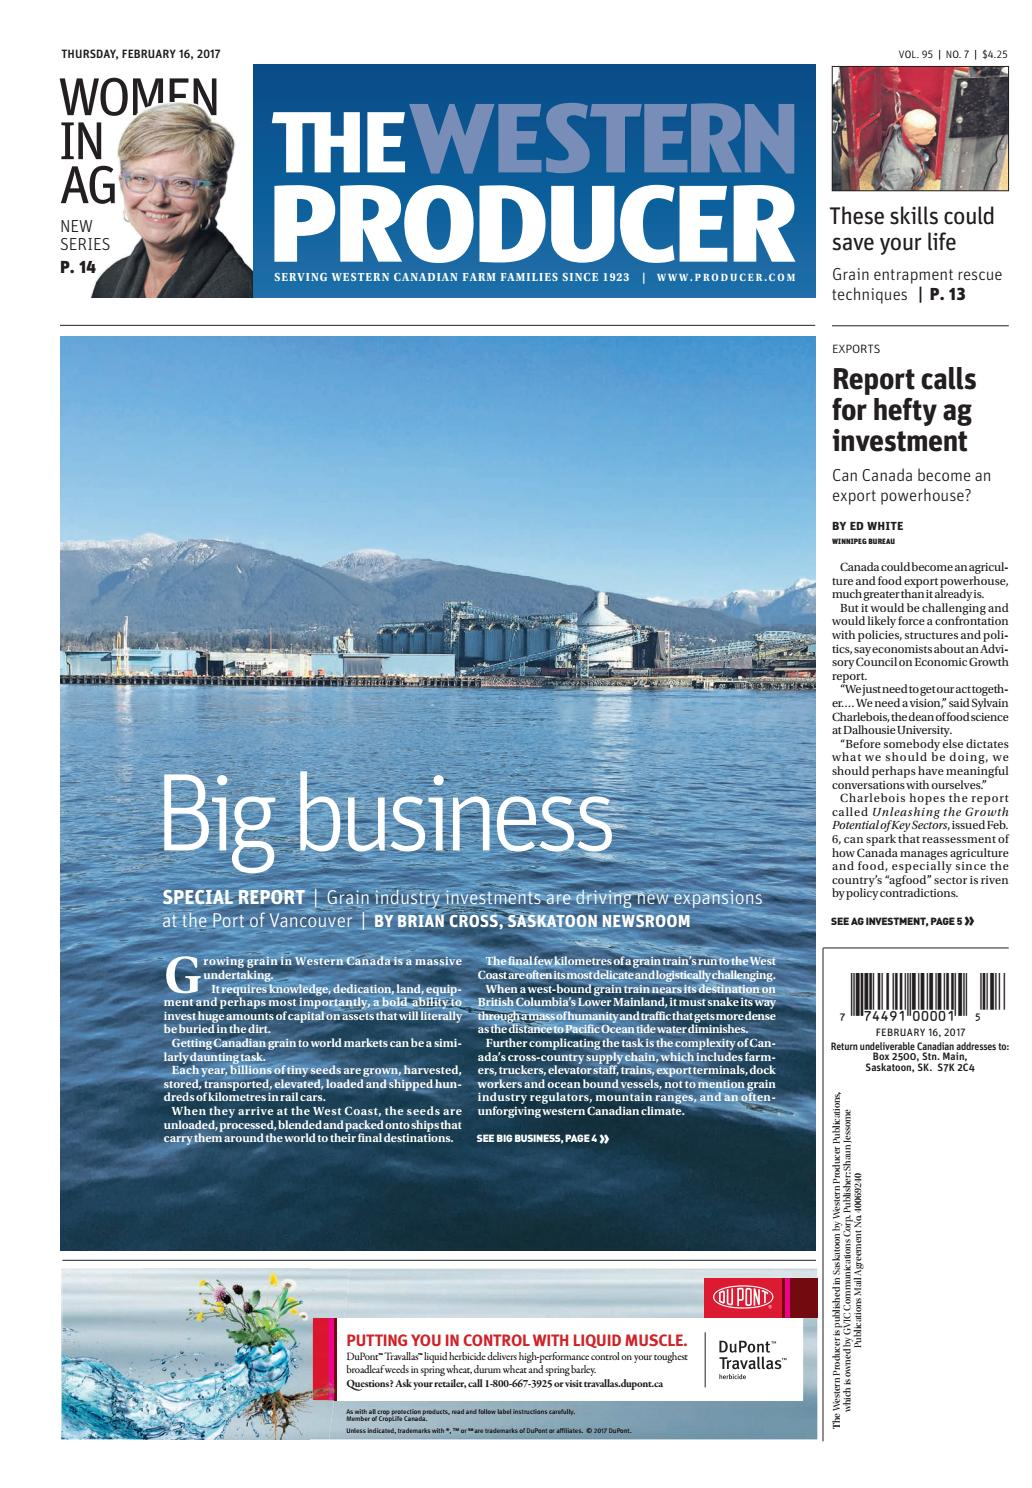 The western producer february 16, 2017 by The Western Producer - issuu